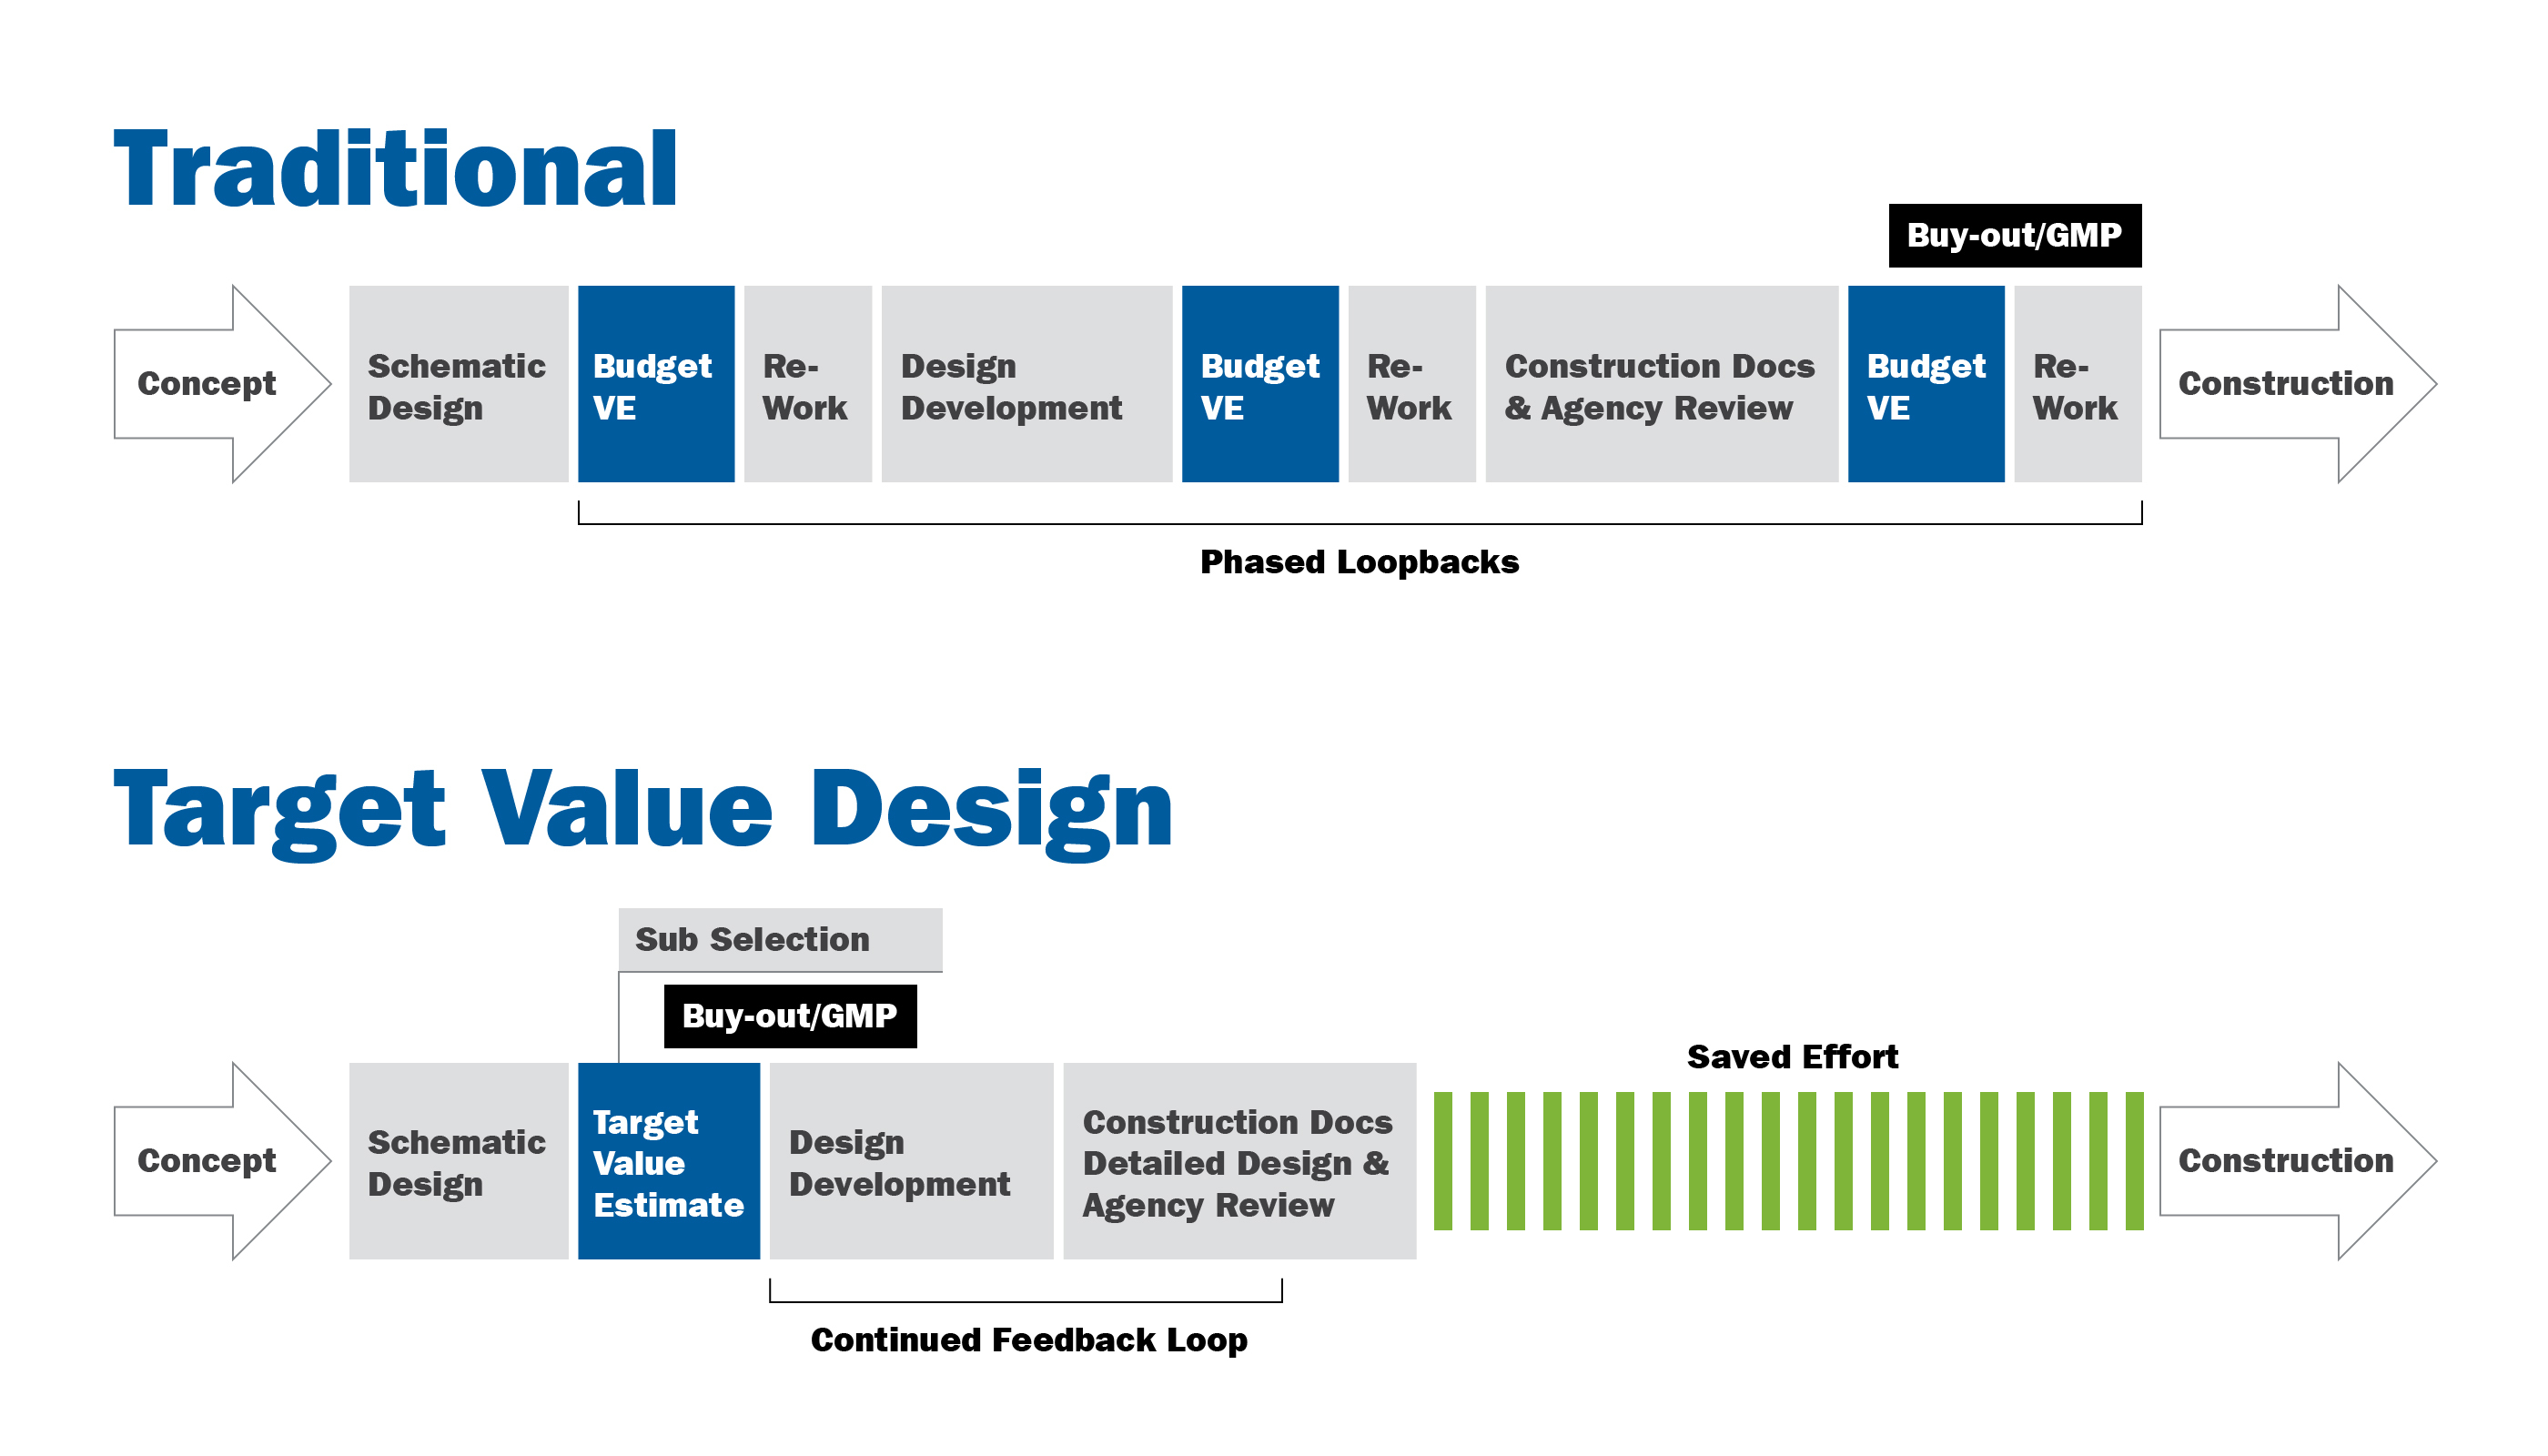 Long loop traditional phases vs concurrent phases in target value approach which improves schedule and value.